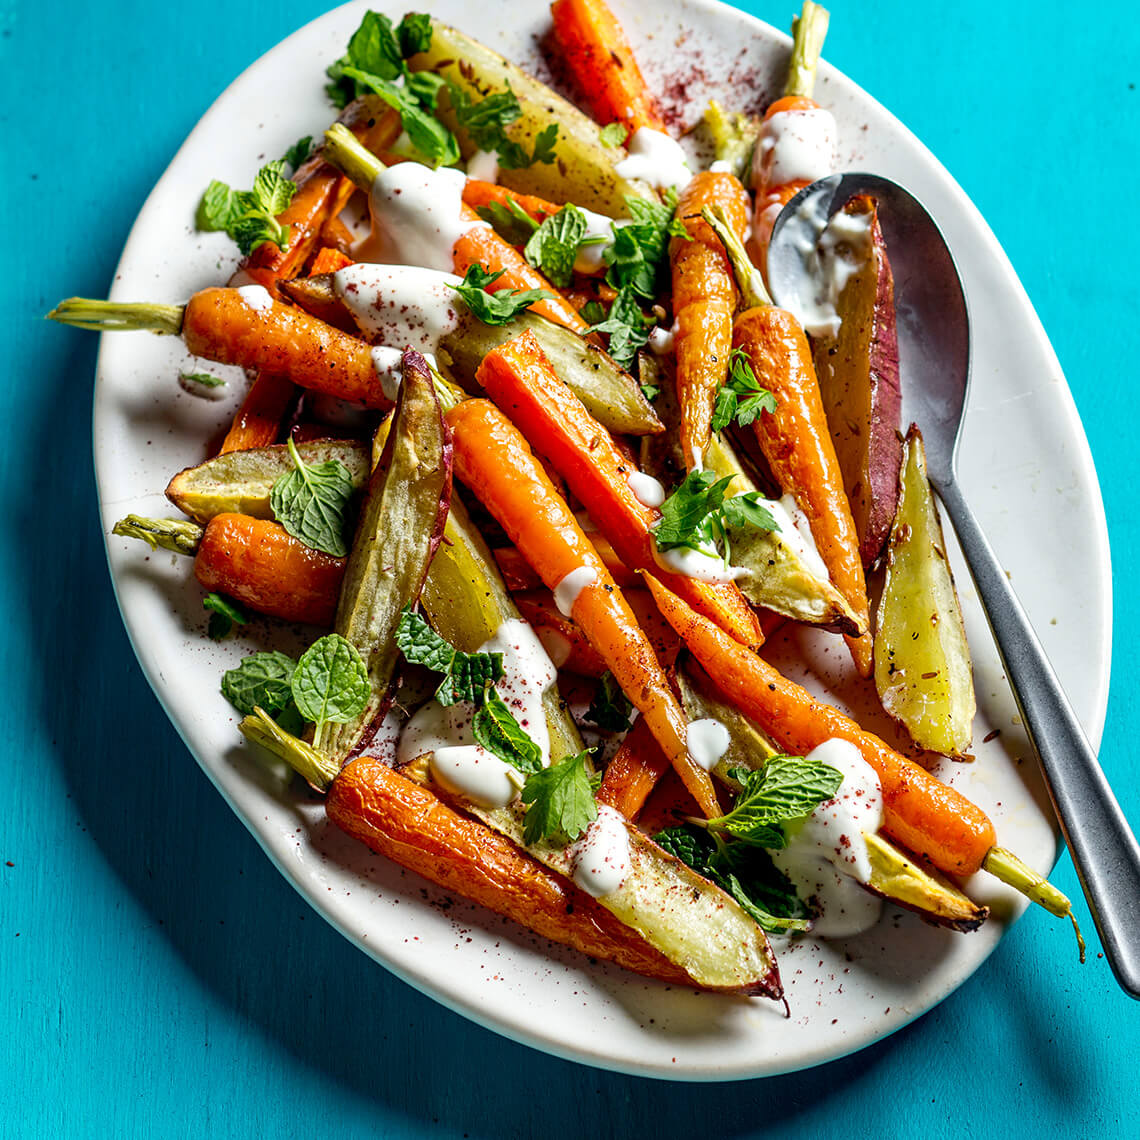 Roasted sweet potato and carrot